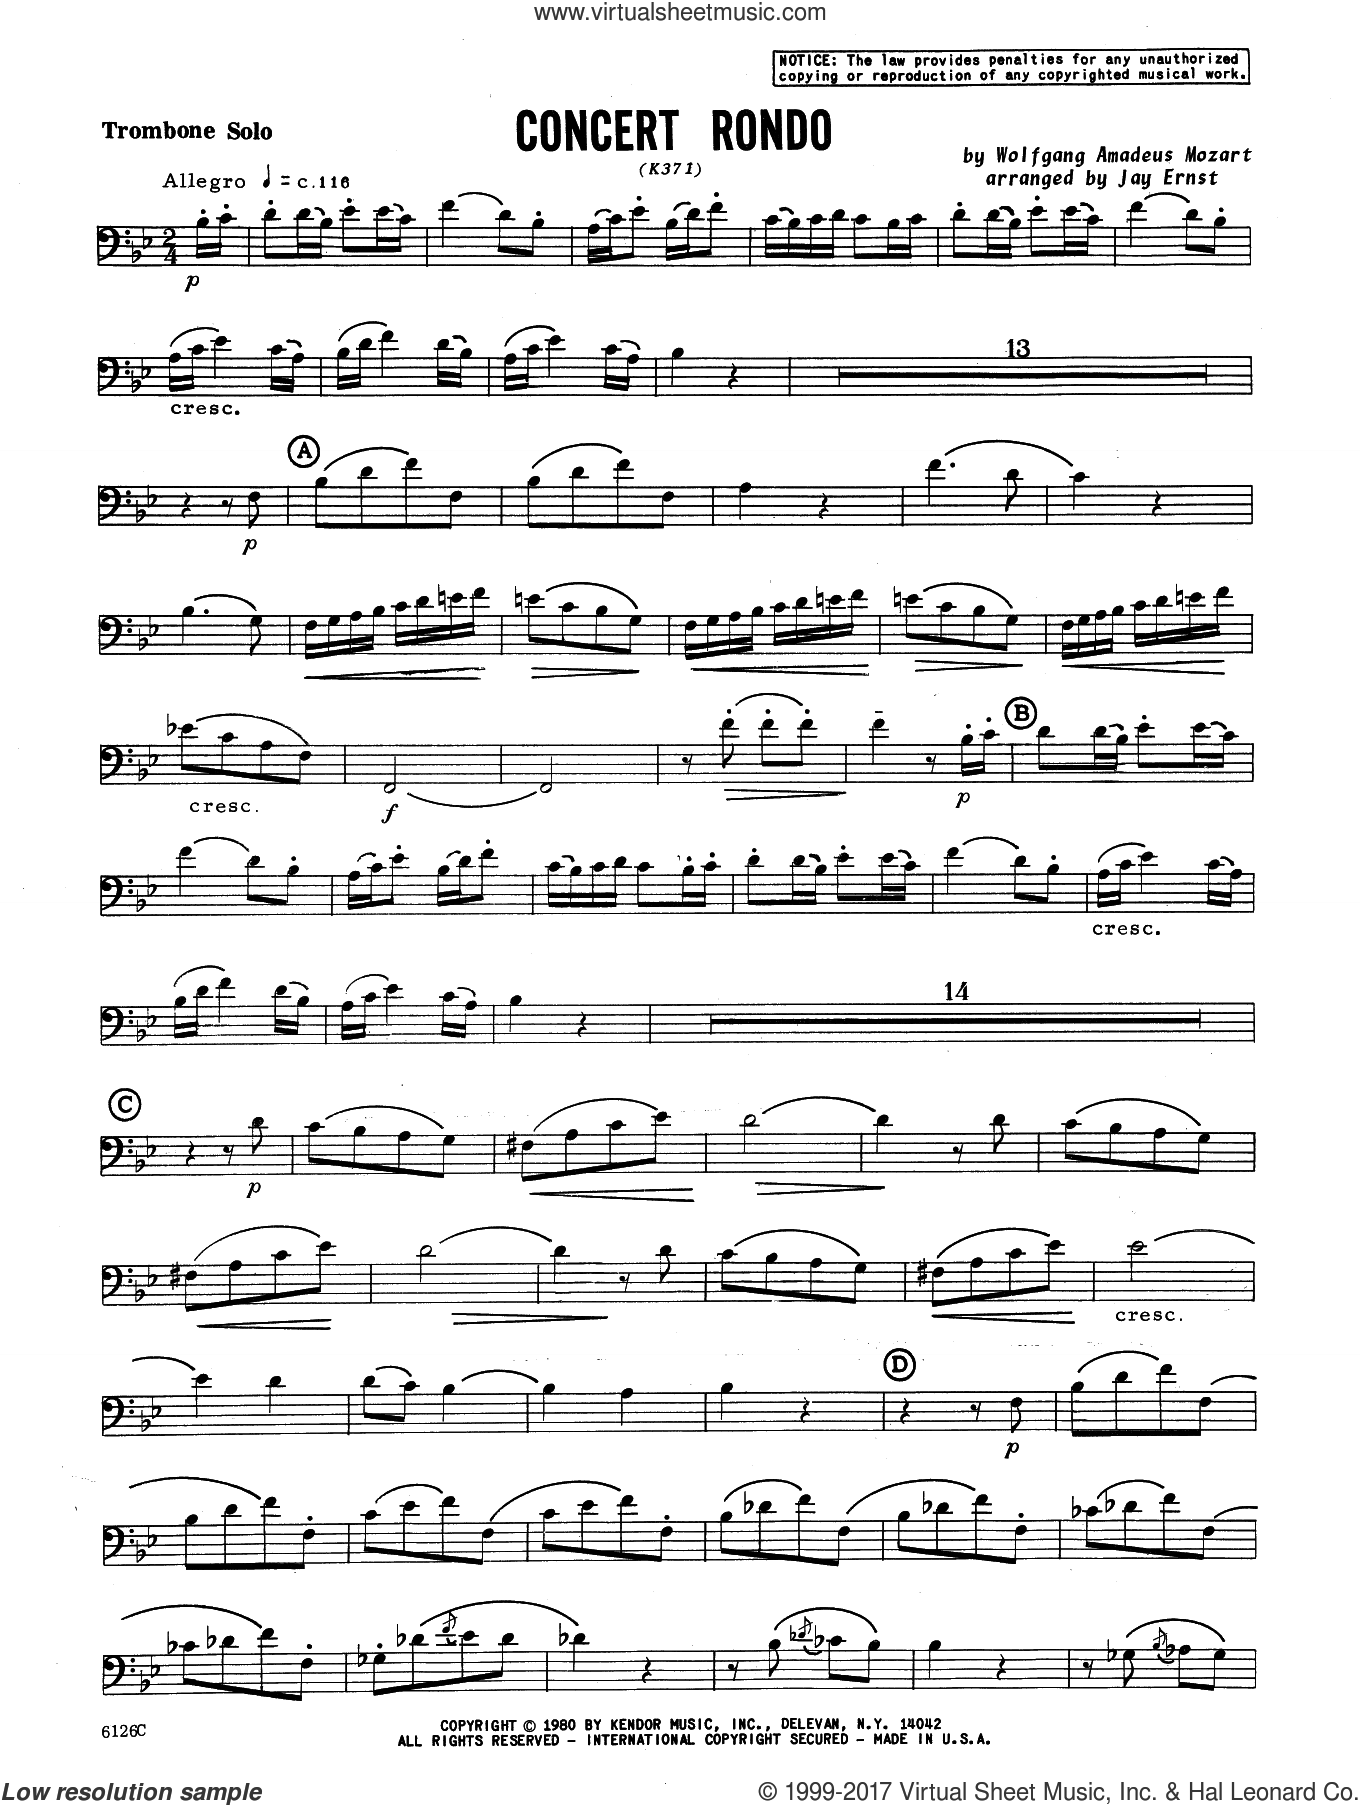 Concert Rondo (K371) (complete set of parts) sheet music for trombone and piano by Wolfgang Amadeus Mozart and Ernst, Heinrich Wilhelm, classical score, intermediate skill level